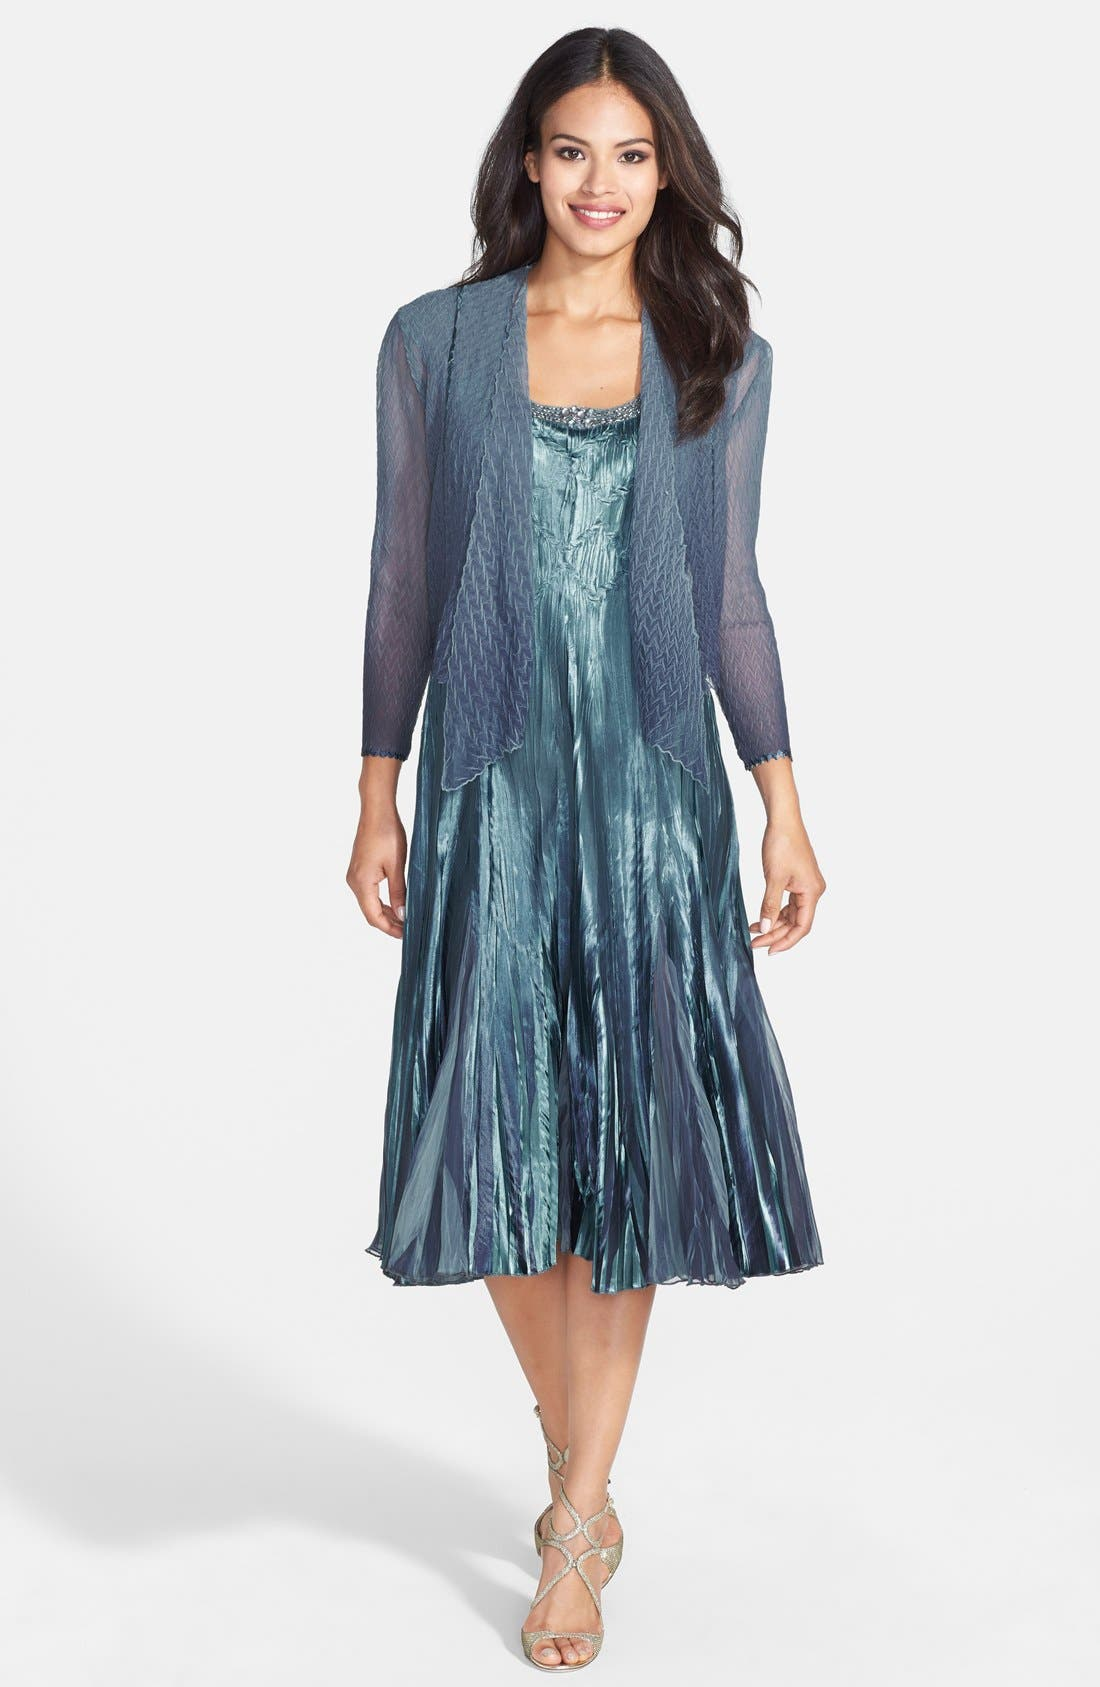 Embellished Pleat Mixed Media Dress with Jacket,                         Main,                         color, Silver Blue Ombre